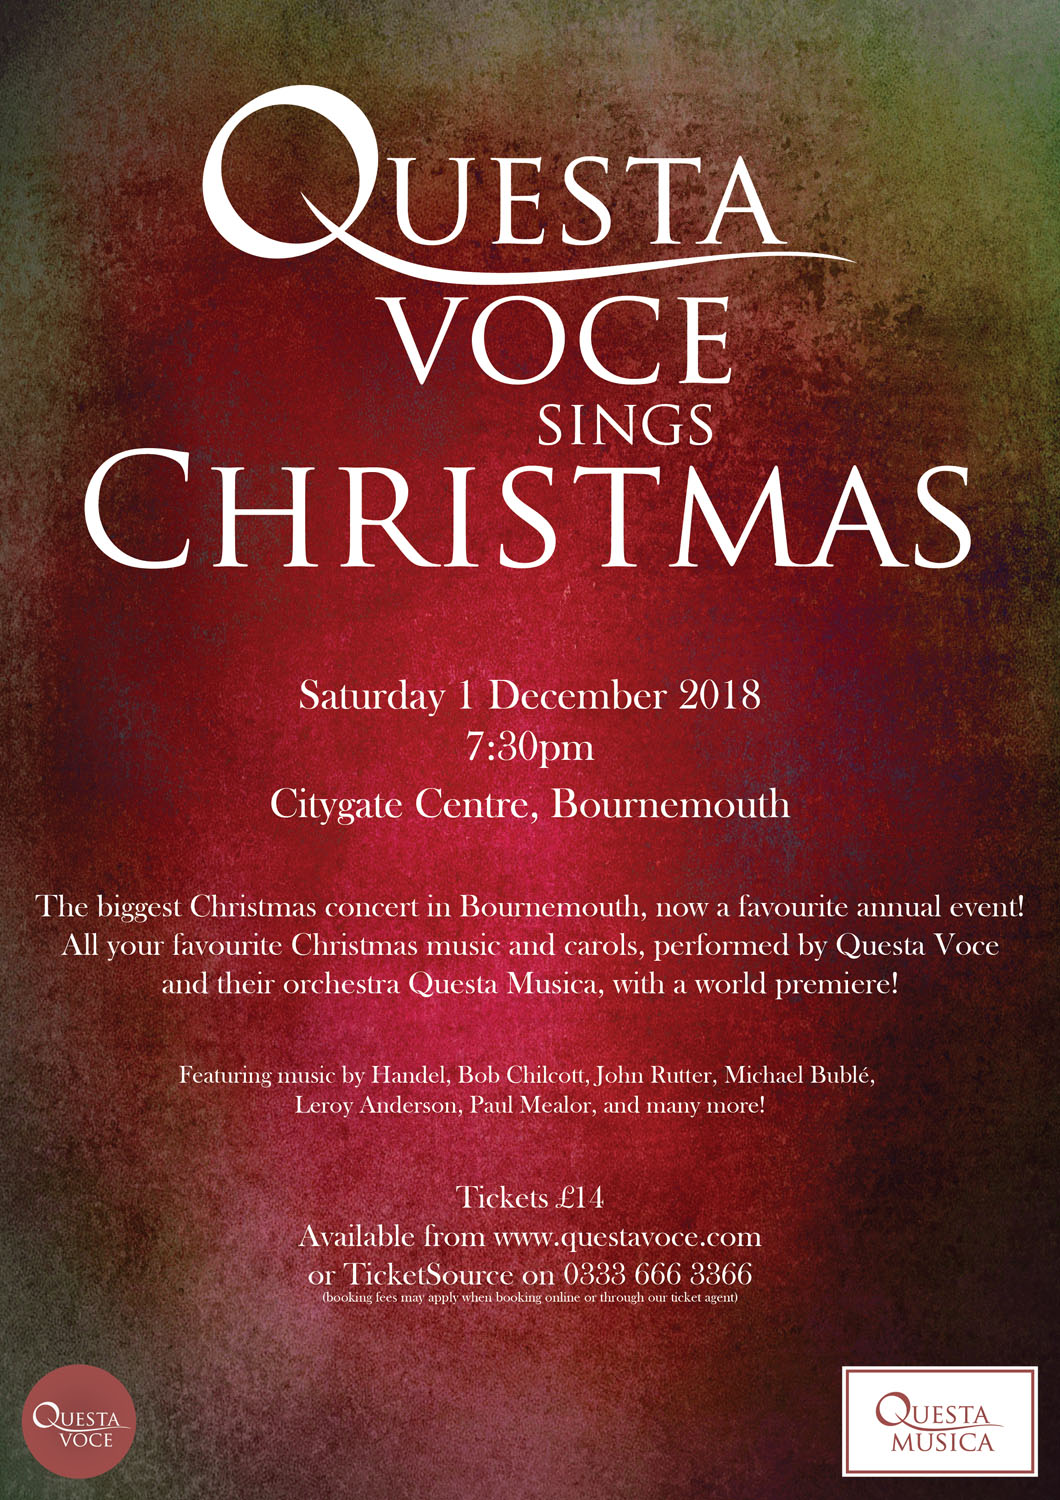 Questa Voce Sings Christmas 2018 at Citygate Centre event tickets ...